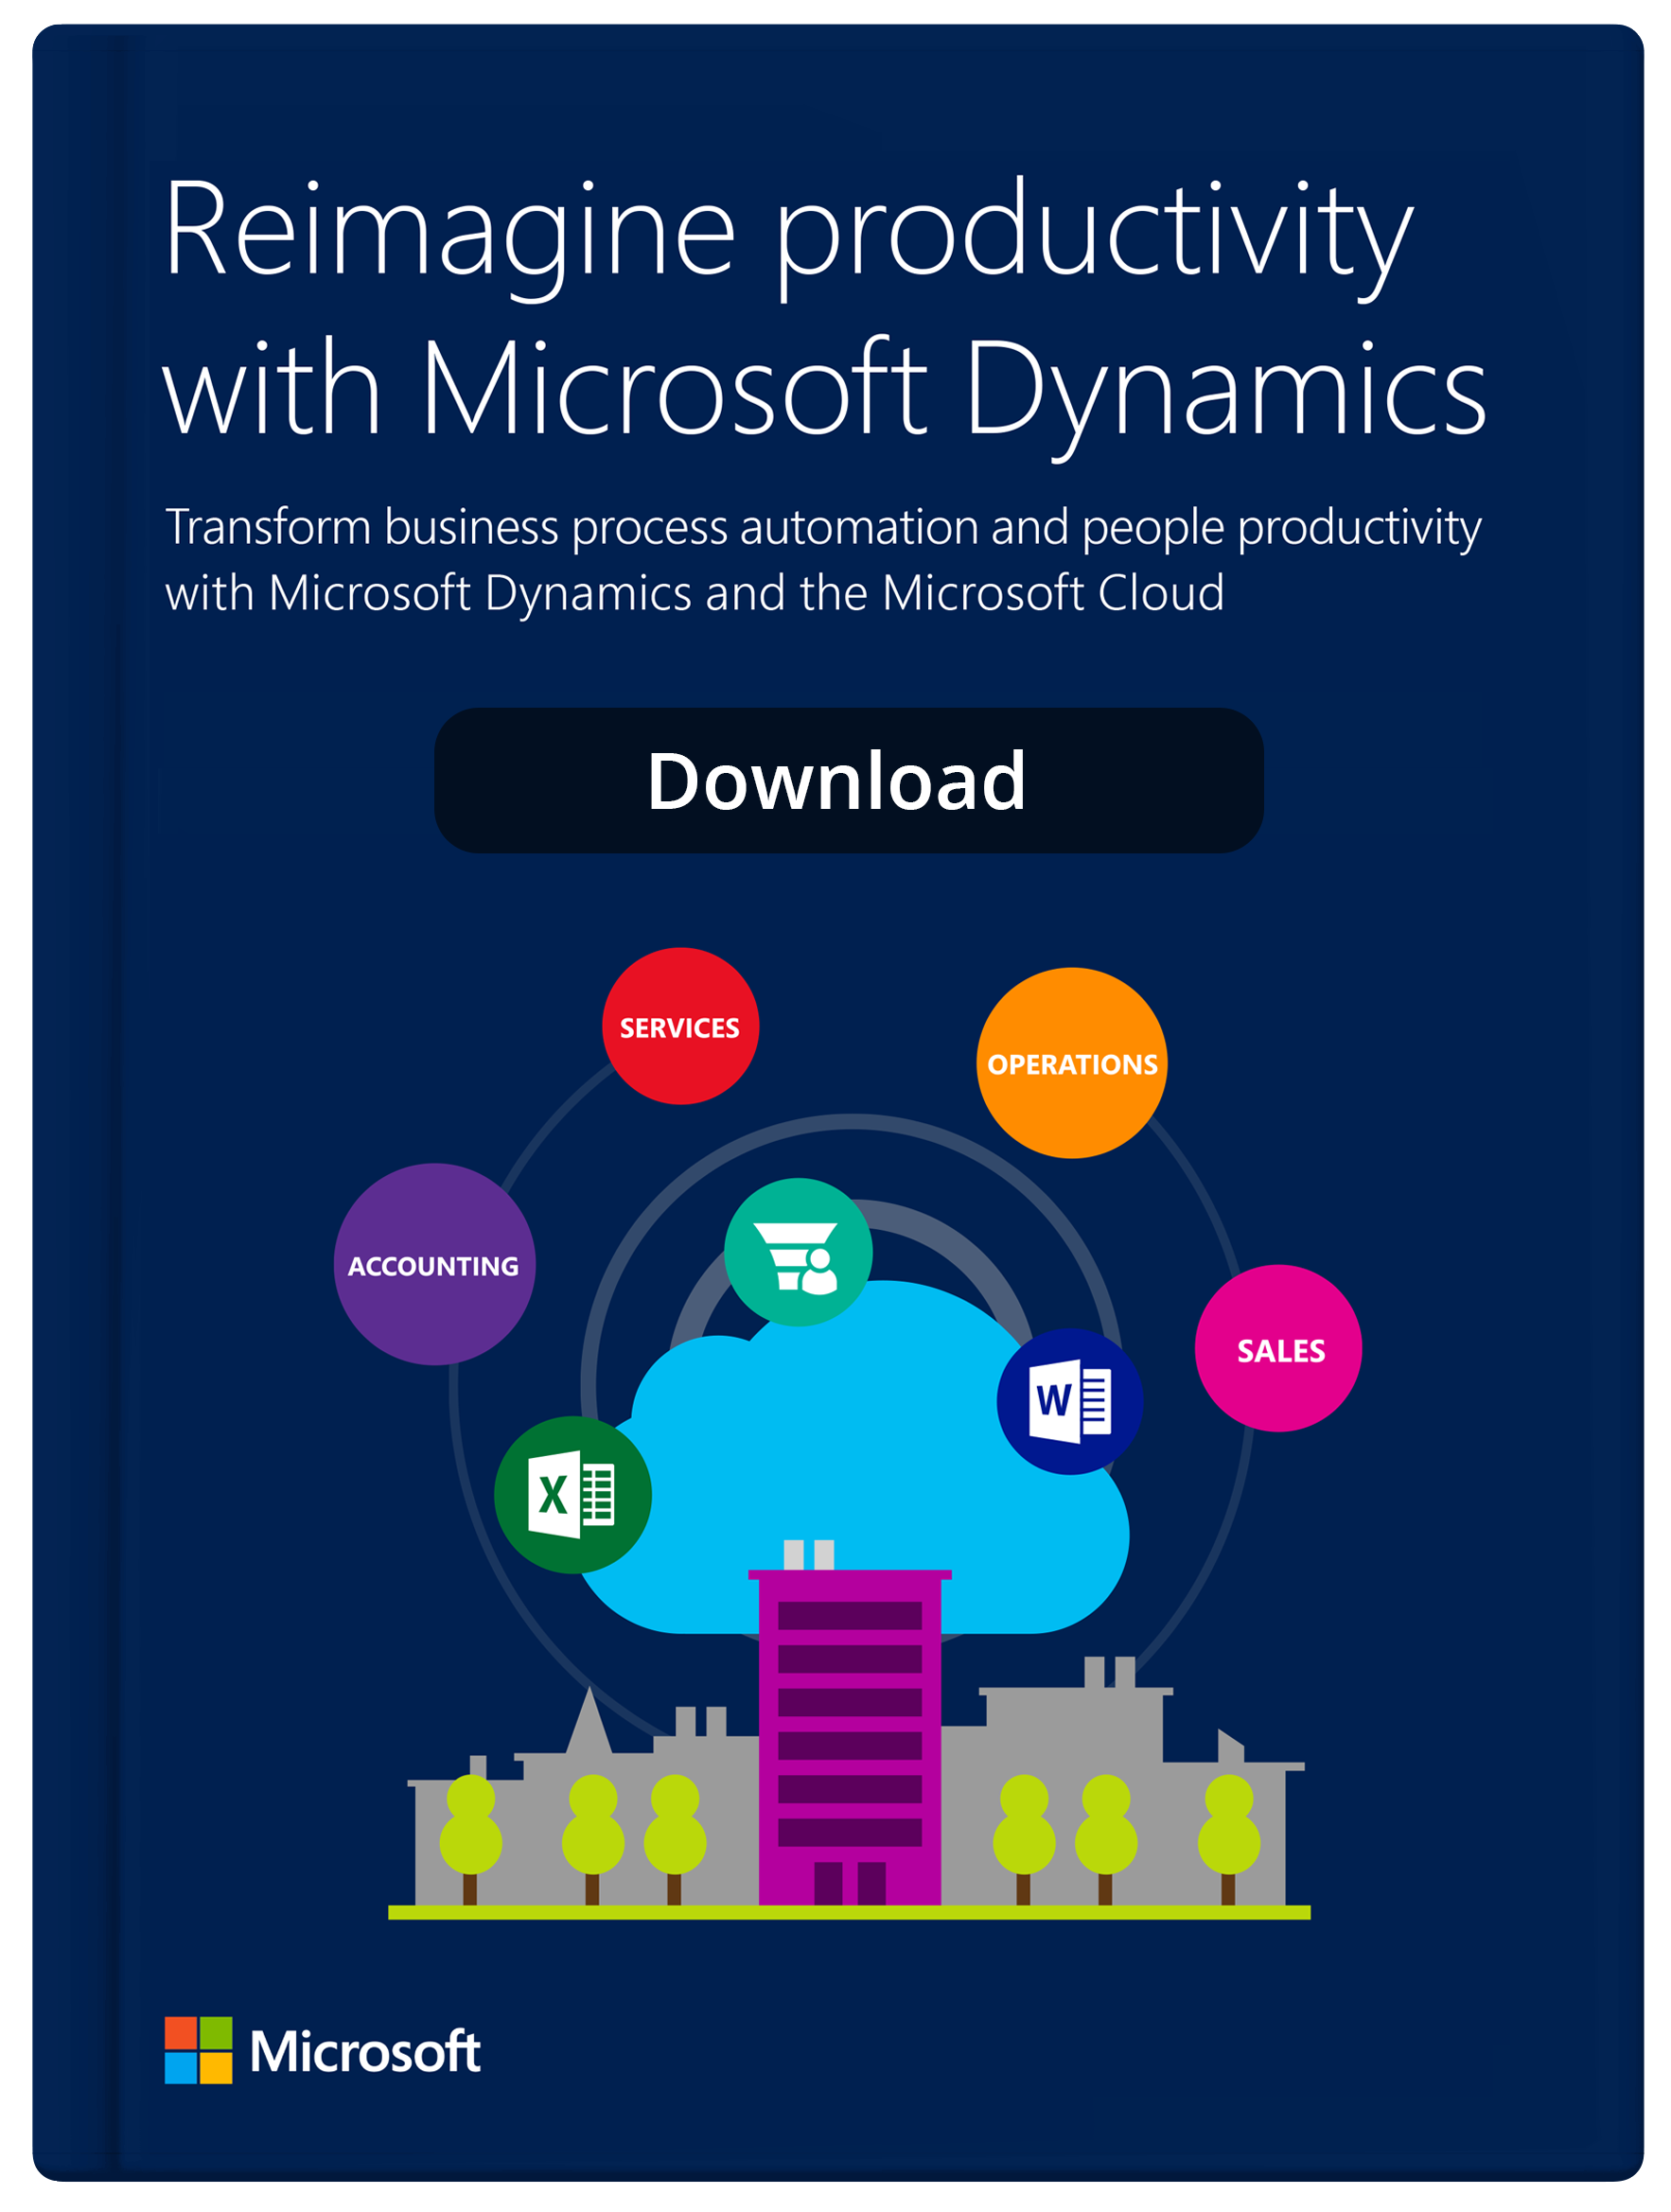 Reimagine Productivity with Microsoft Dynamics